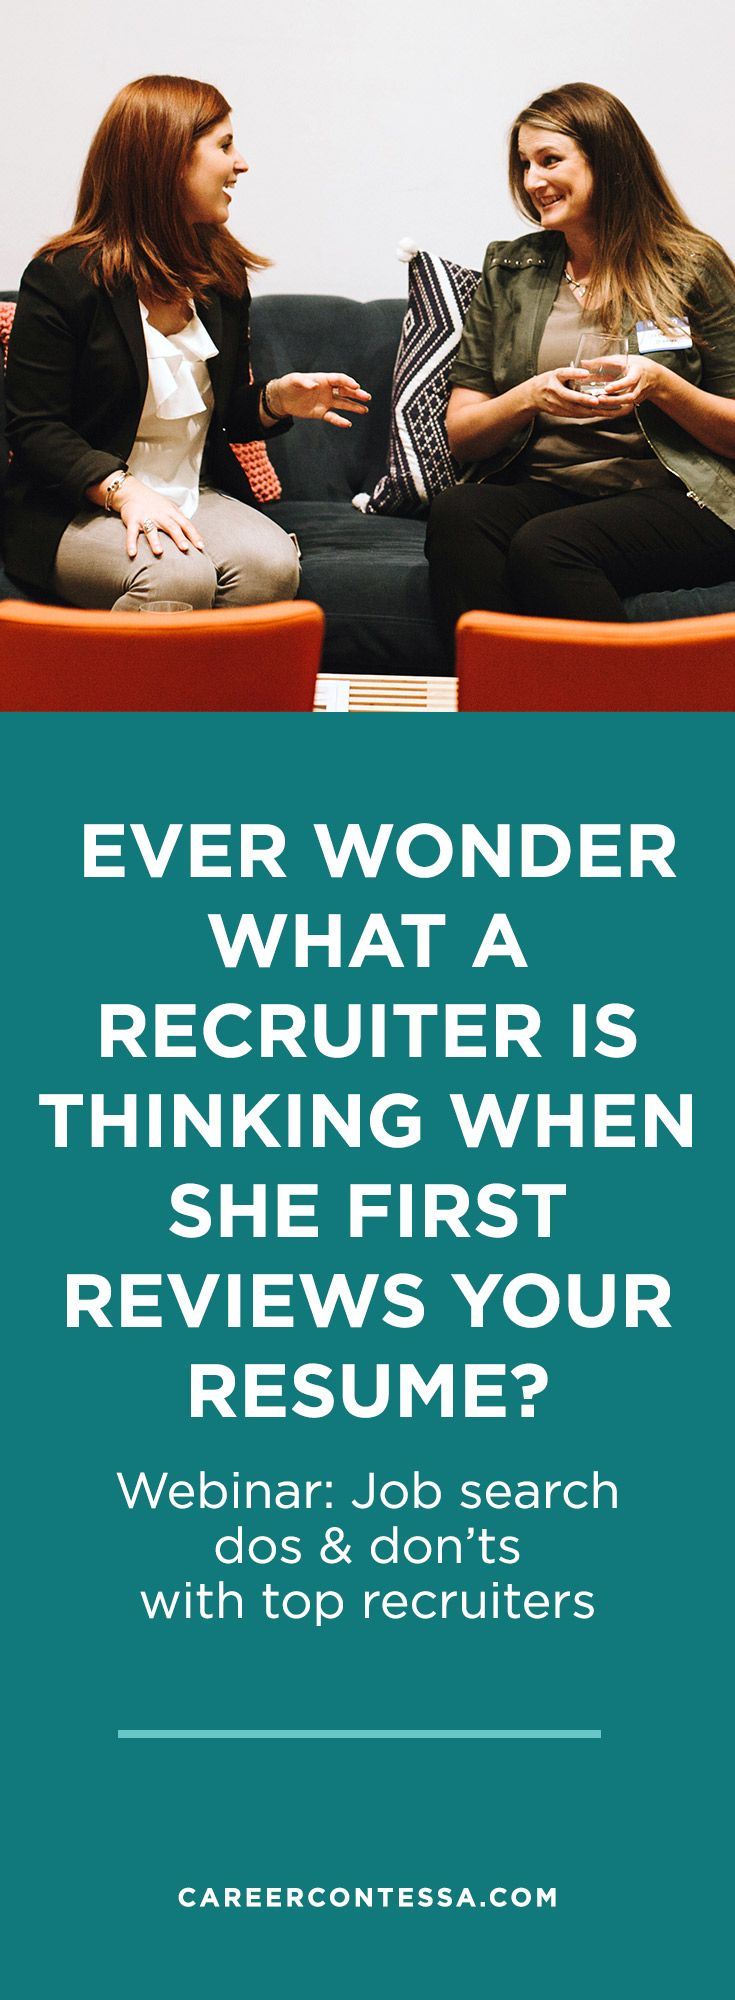 Want to know what you should be doing to land your dream job? Ever wonder what a recruiter is thinking when she first reviews your resume? Four recruiters will be talking about what makes a job search successful and how you can use your time wisely when applying for a new role. Stop applying with crossed fingers and outdated strategies.   CareerContessa.com